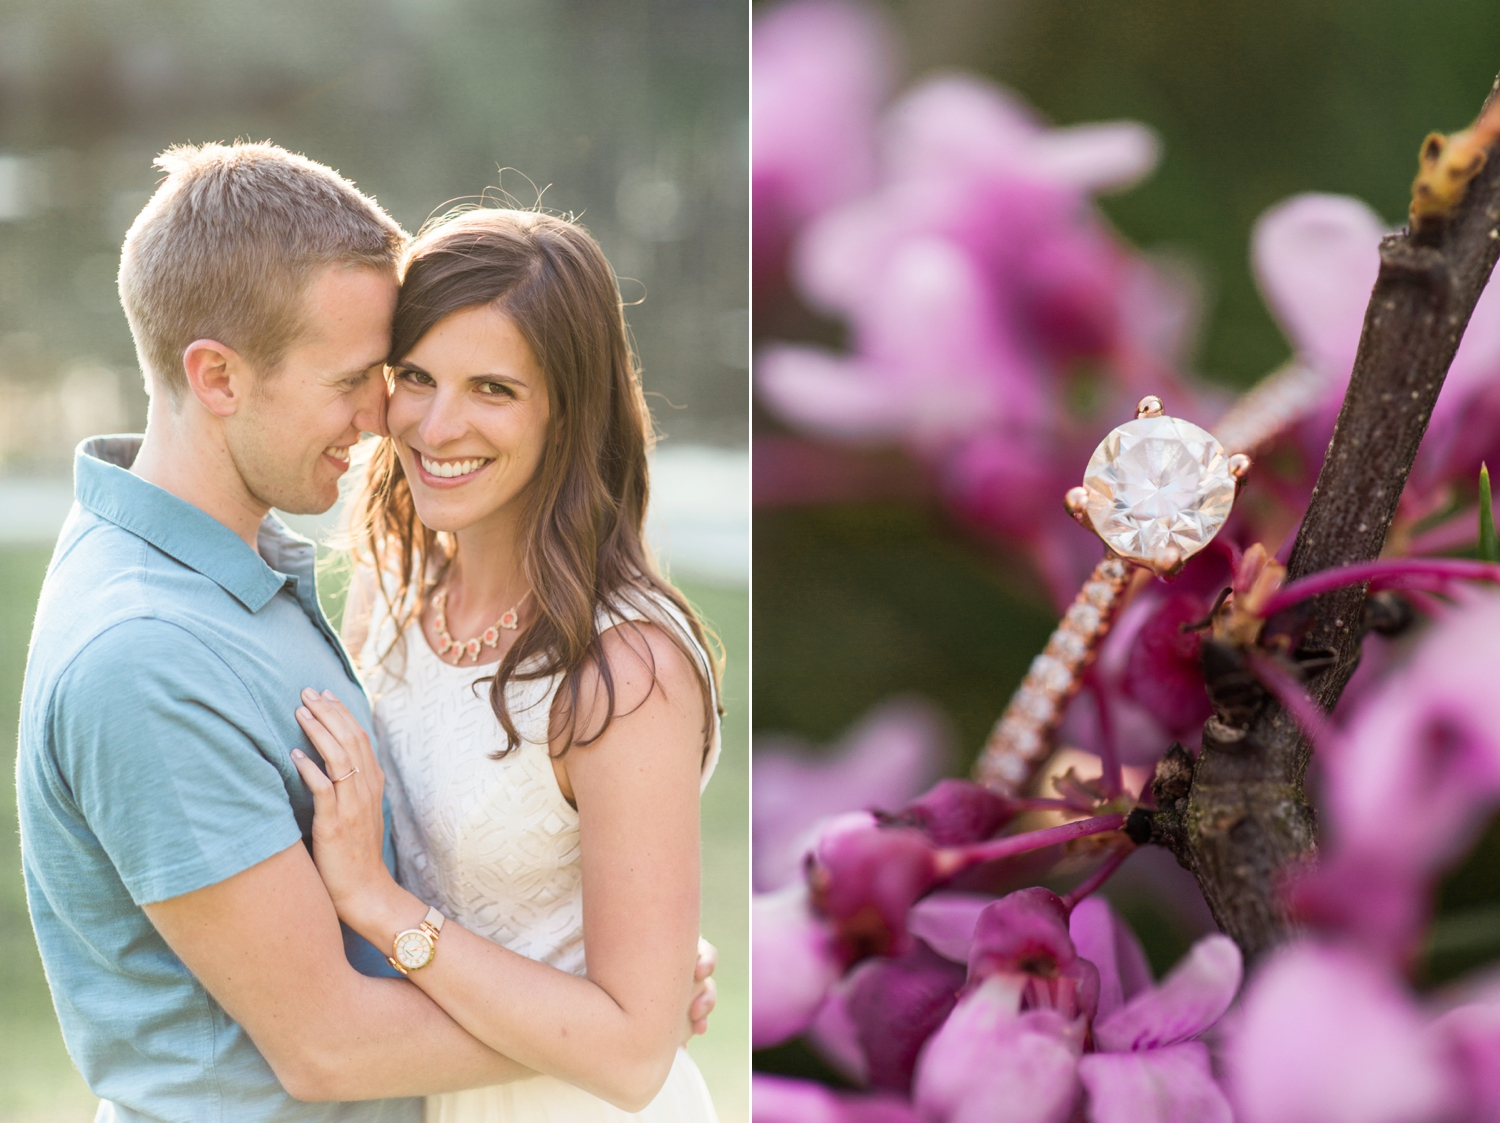 indianapolis_indiana_wedding_photographer_eagle_creek_engagement_chloe_luka_photography_6364.jpg